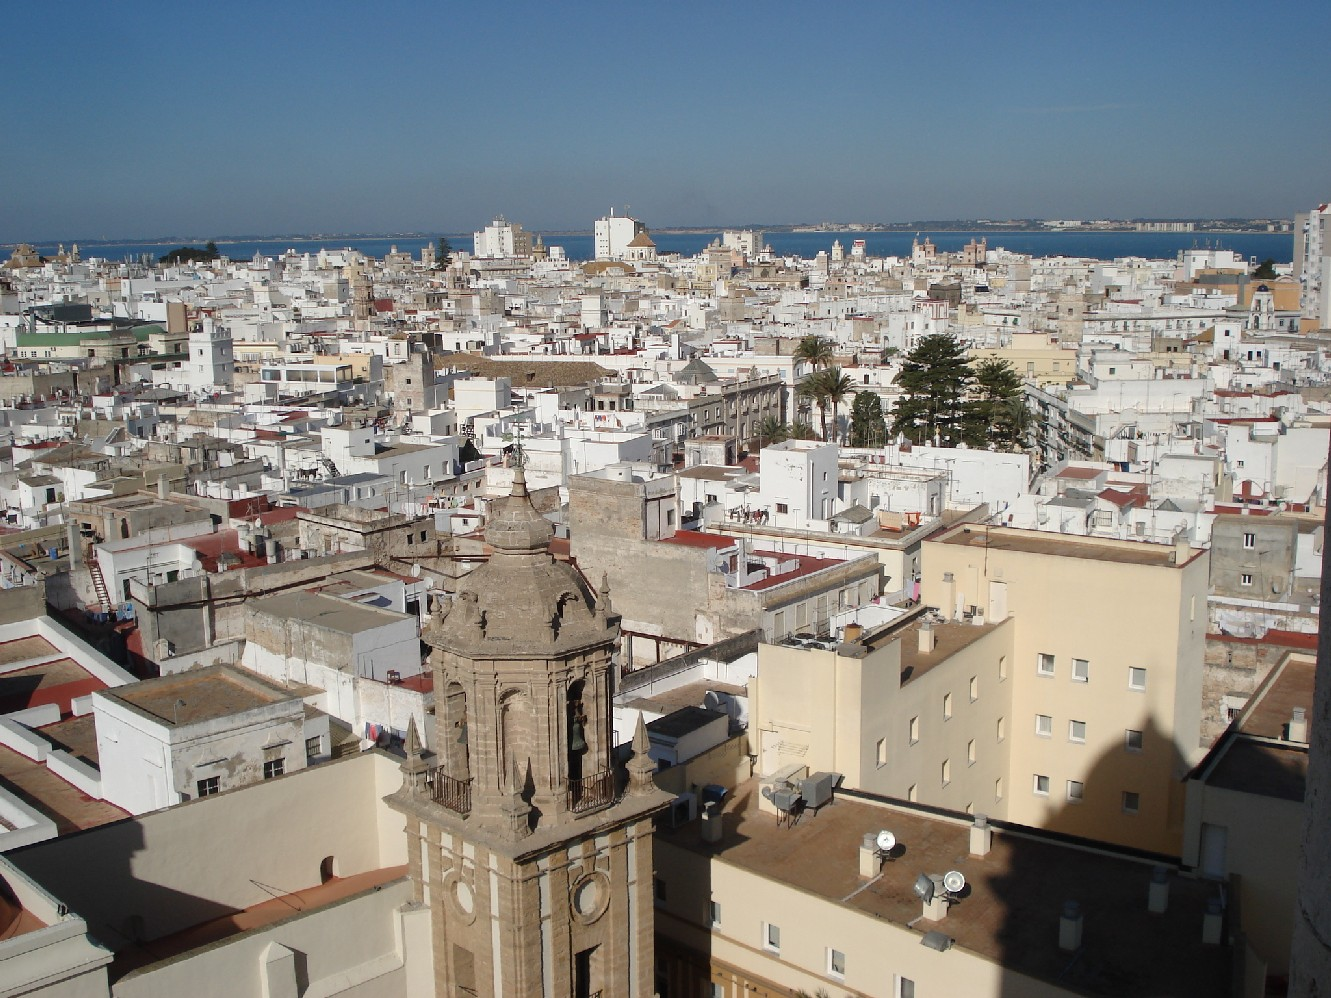 Cadiz Spain  city images : Europe images Cadiz, Spain HD wallpaper and background photos 670694